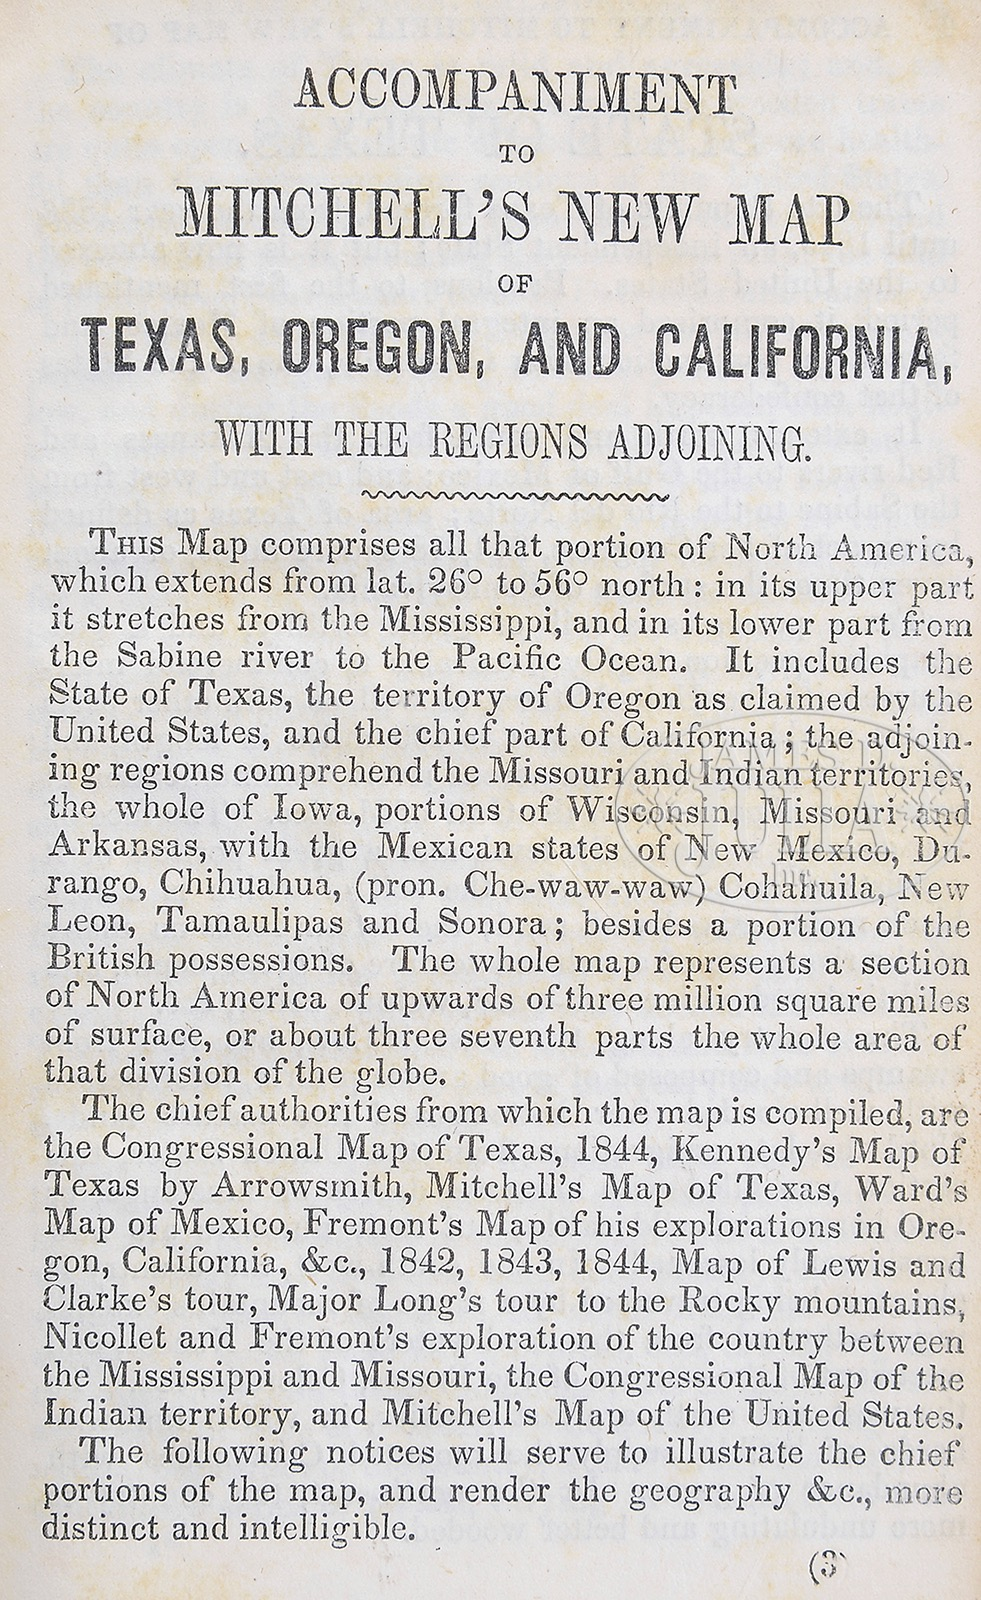 Rare And Fine 1st Edition Folding Pocket Map Of Texas Oregon And